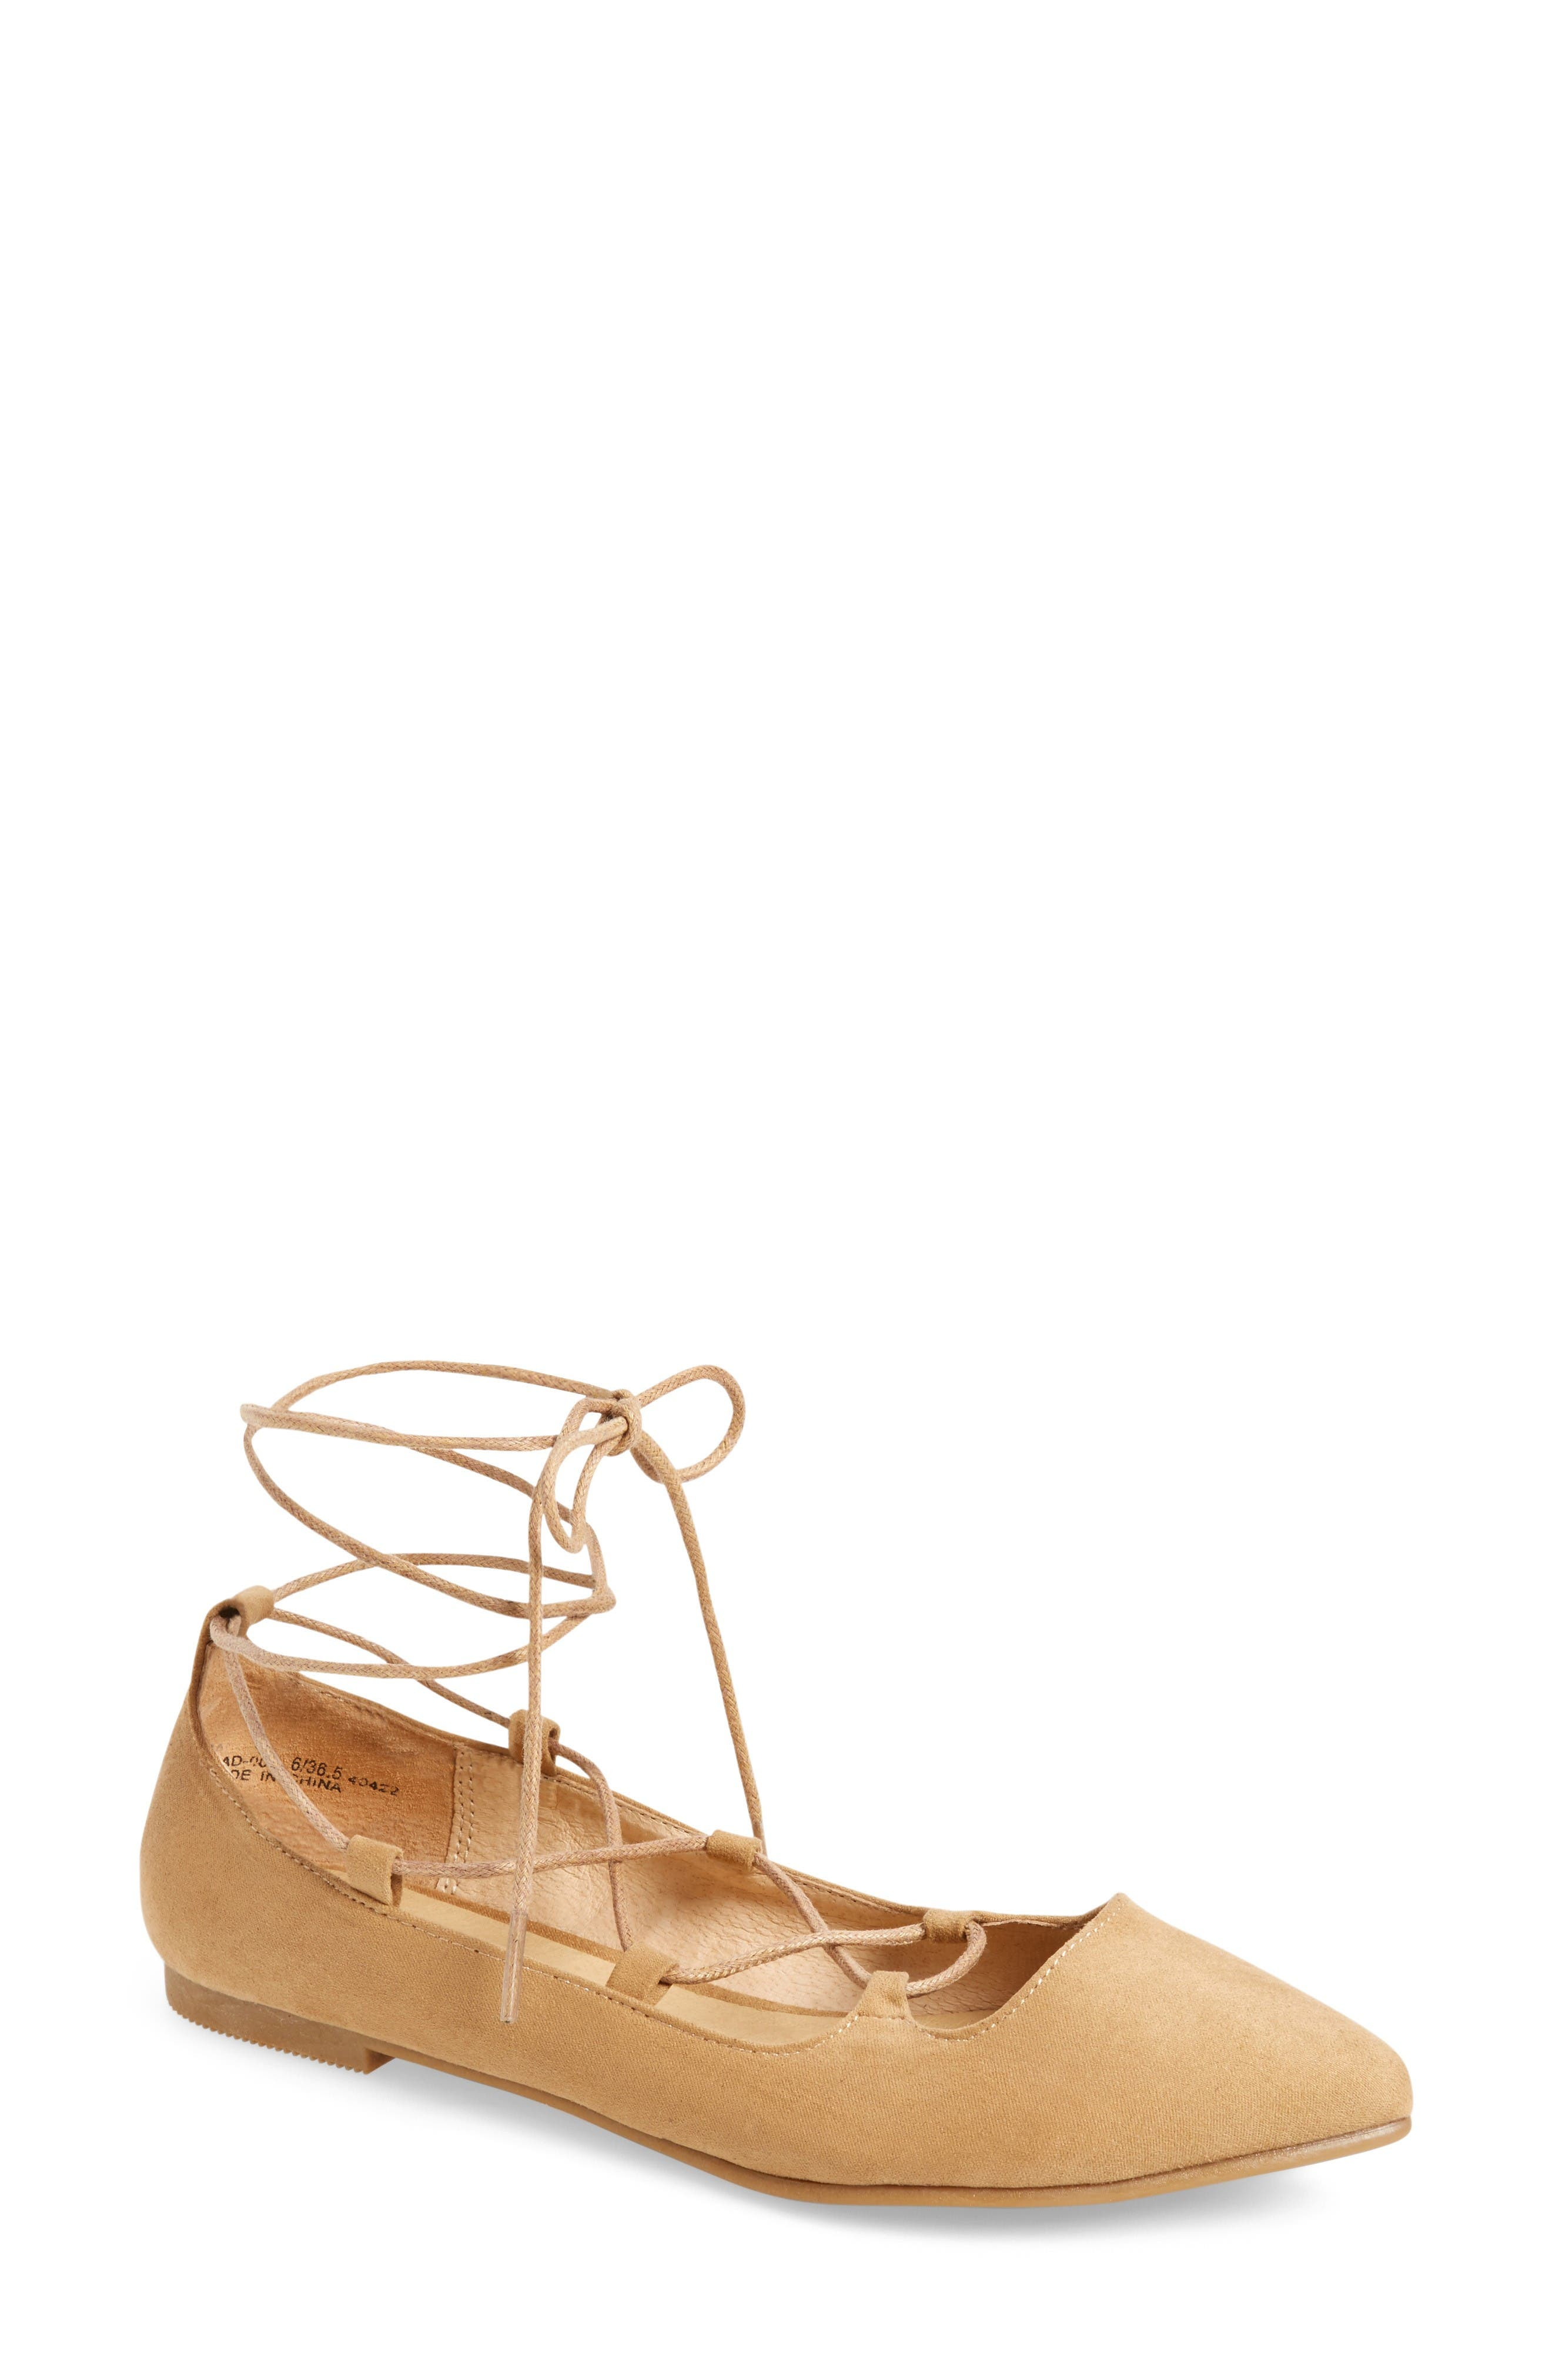 Alternate Image 1 Selected - Chinese Laundry Endless Summer Ghillie Flat (Women)